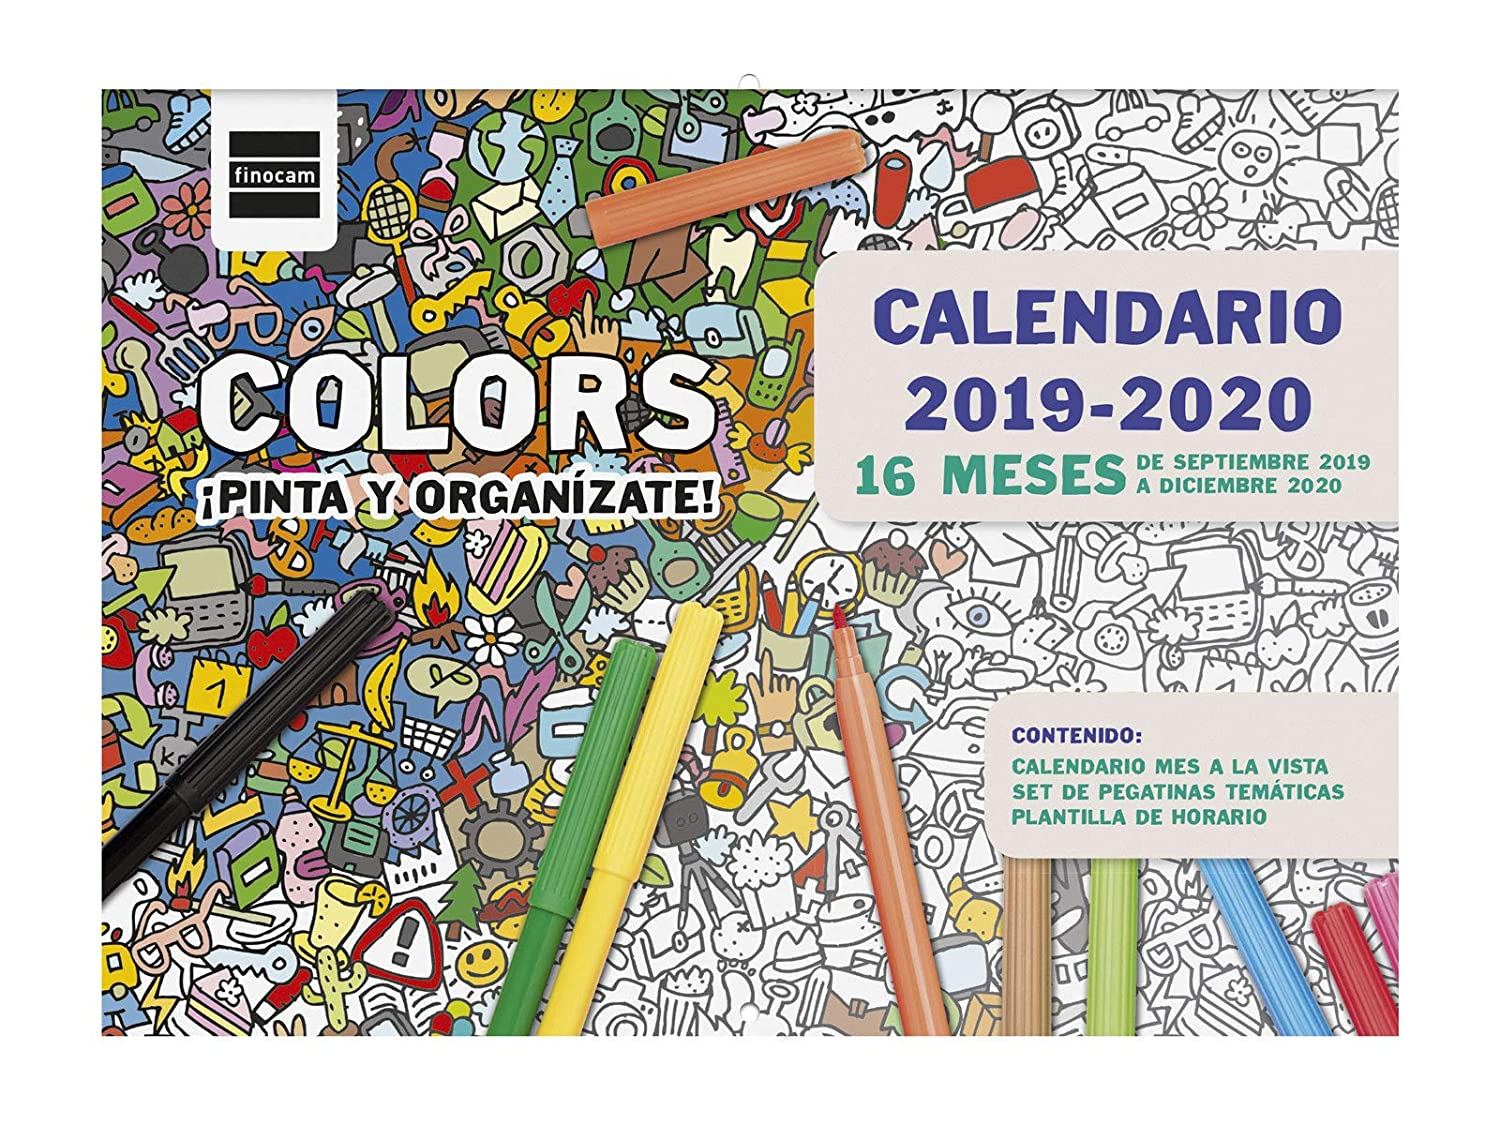 Calendario Mes De Diciembre 2020.Calendario De Pared 16 Meses 2019 2020 Espanol Colors Finocam